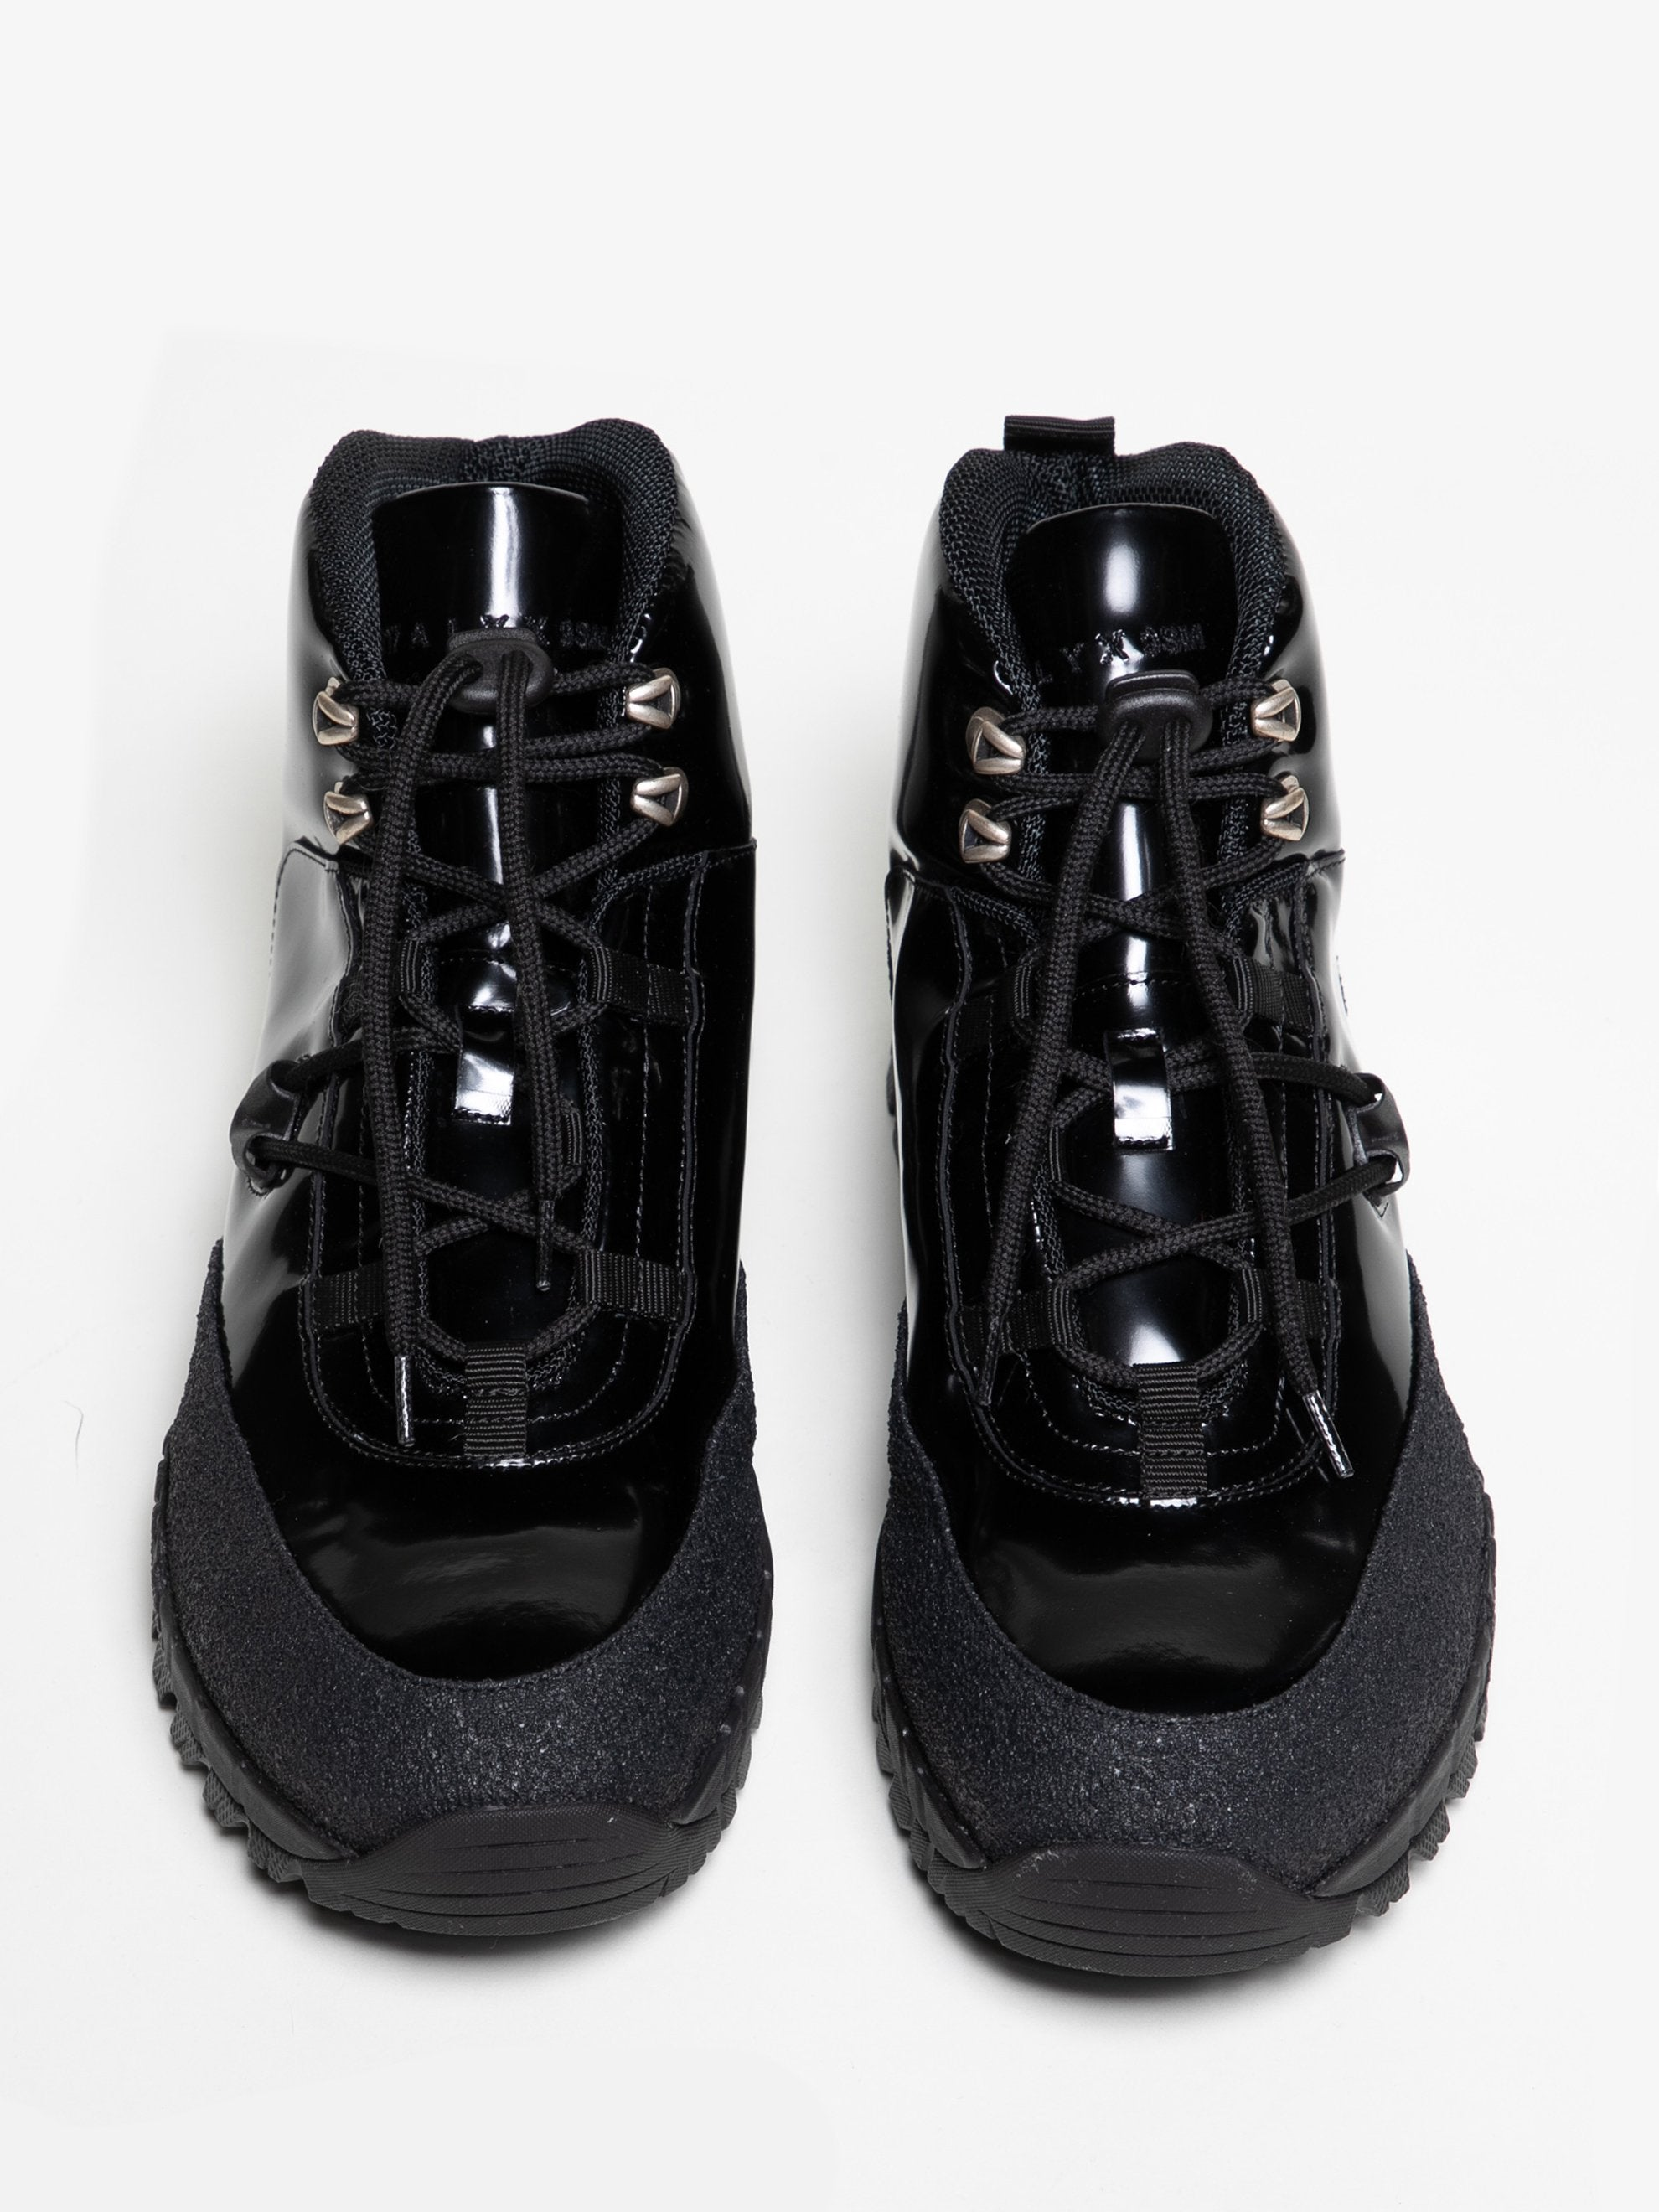 Black Hiking Boots 3